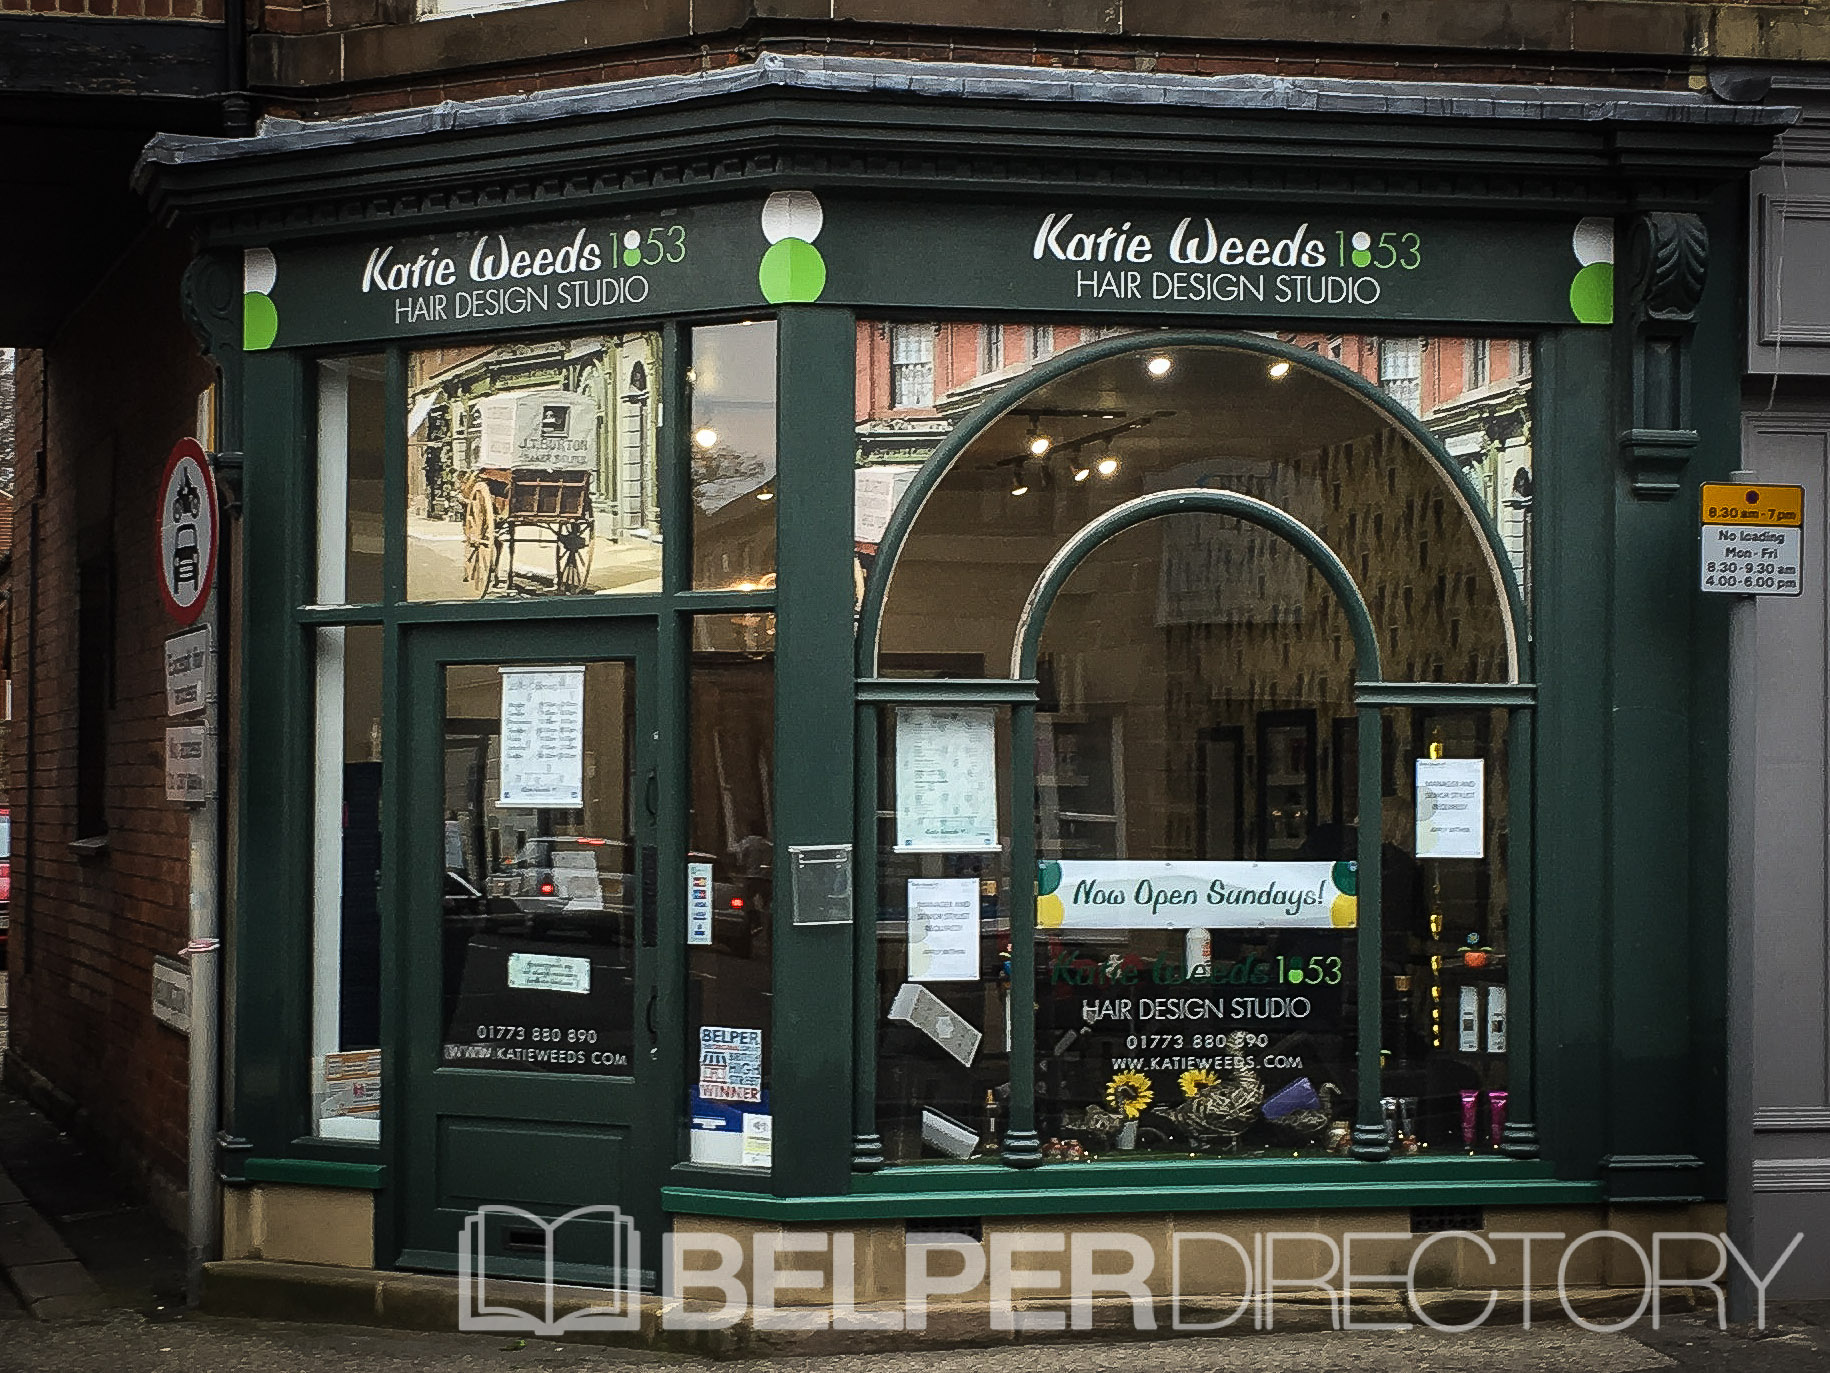 Belper Directory- Katie Weeds Hair Design Studio.jpg